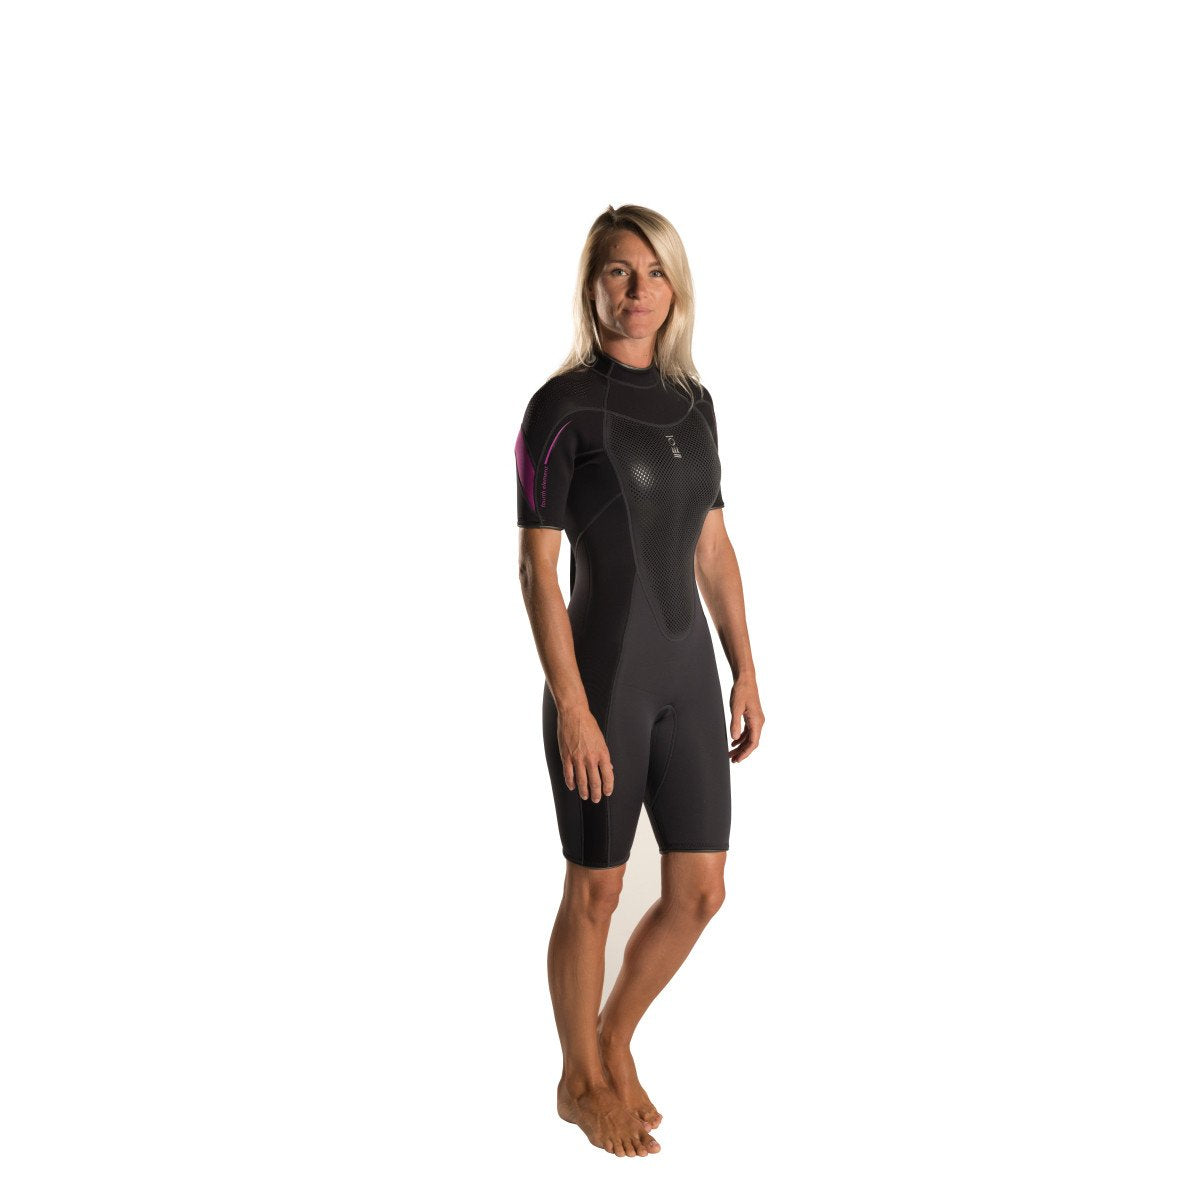 c60edb1345 Xenos 3mm Shortie Wetsuit  Womens - Oyster Diving Equipment ...